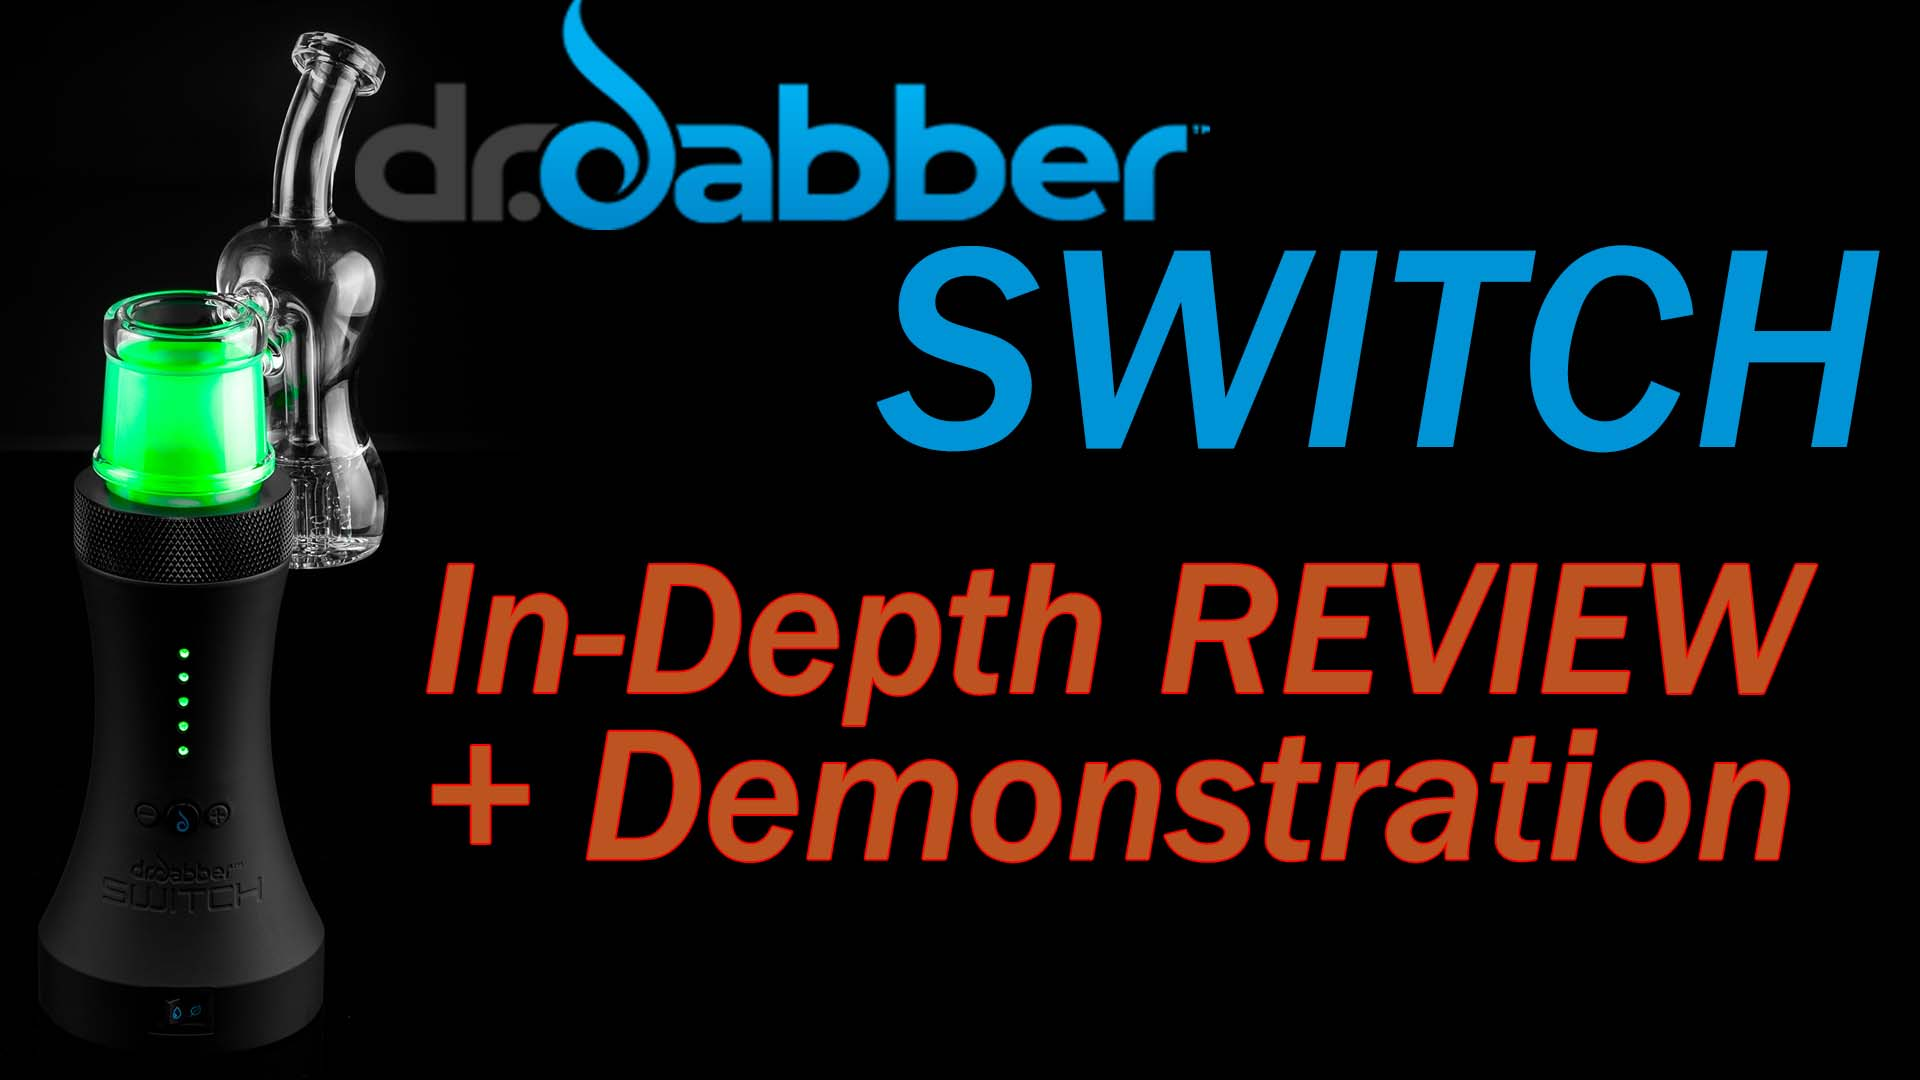 Dr Dabber Switch Review